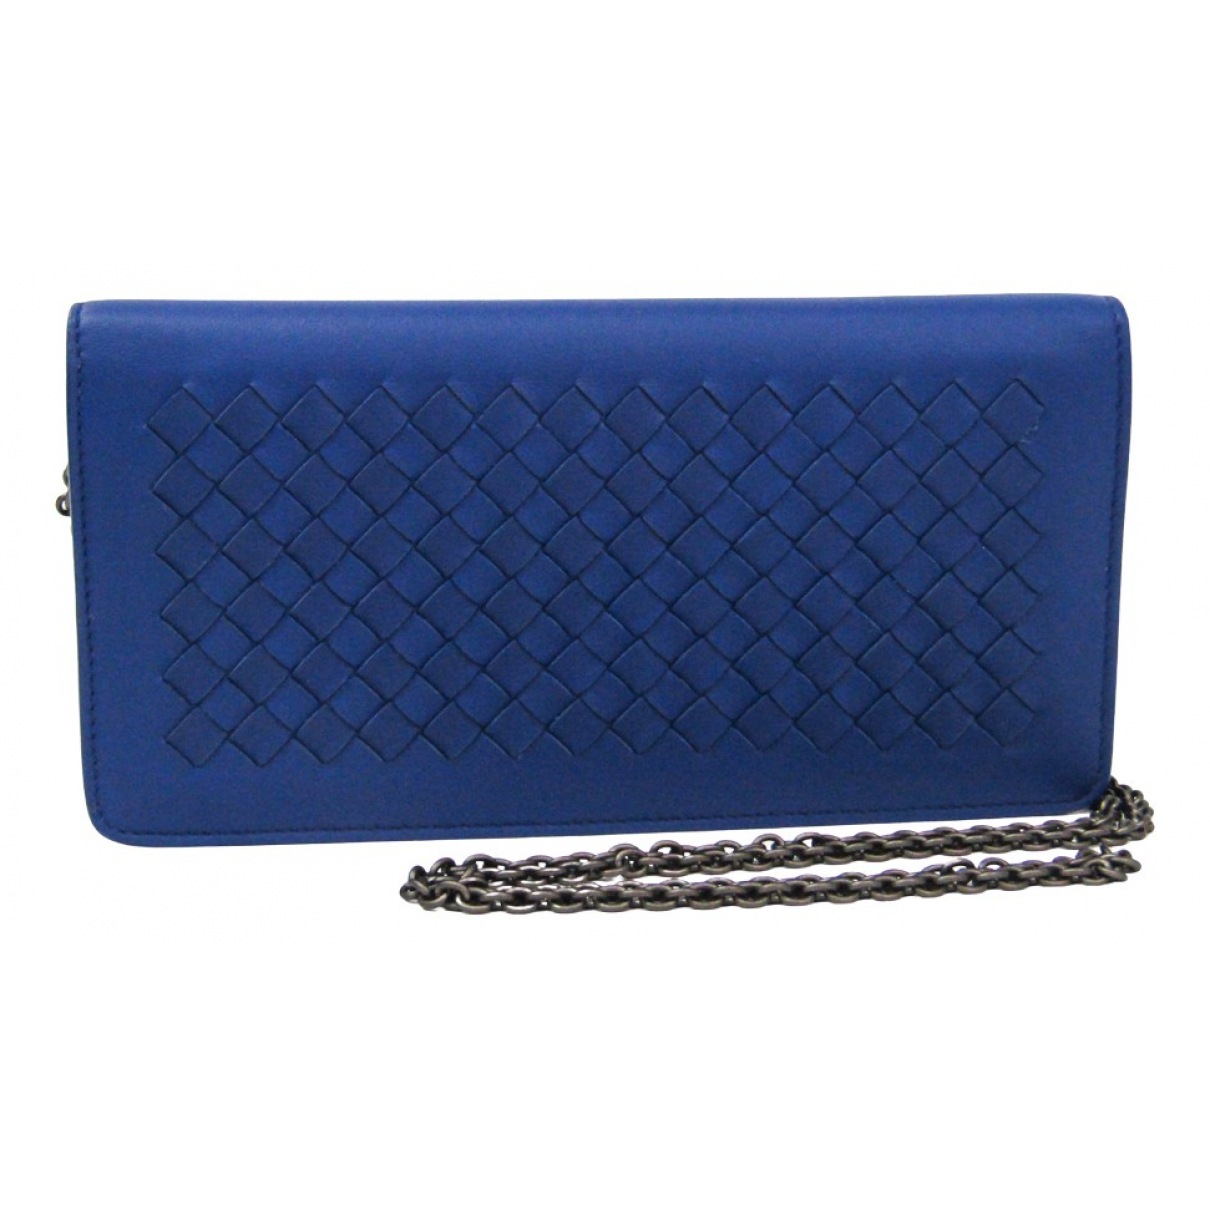 Bottega Veneta \N Clutch in  Blau Leder